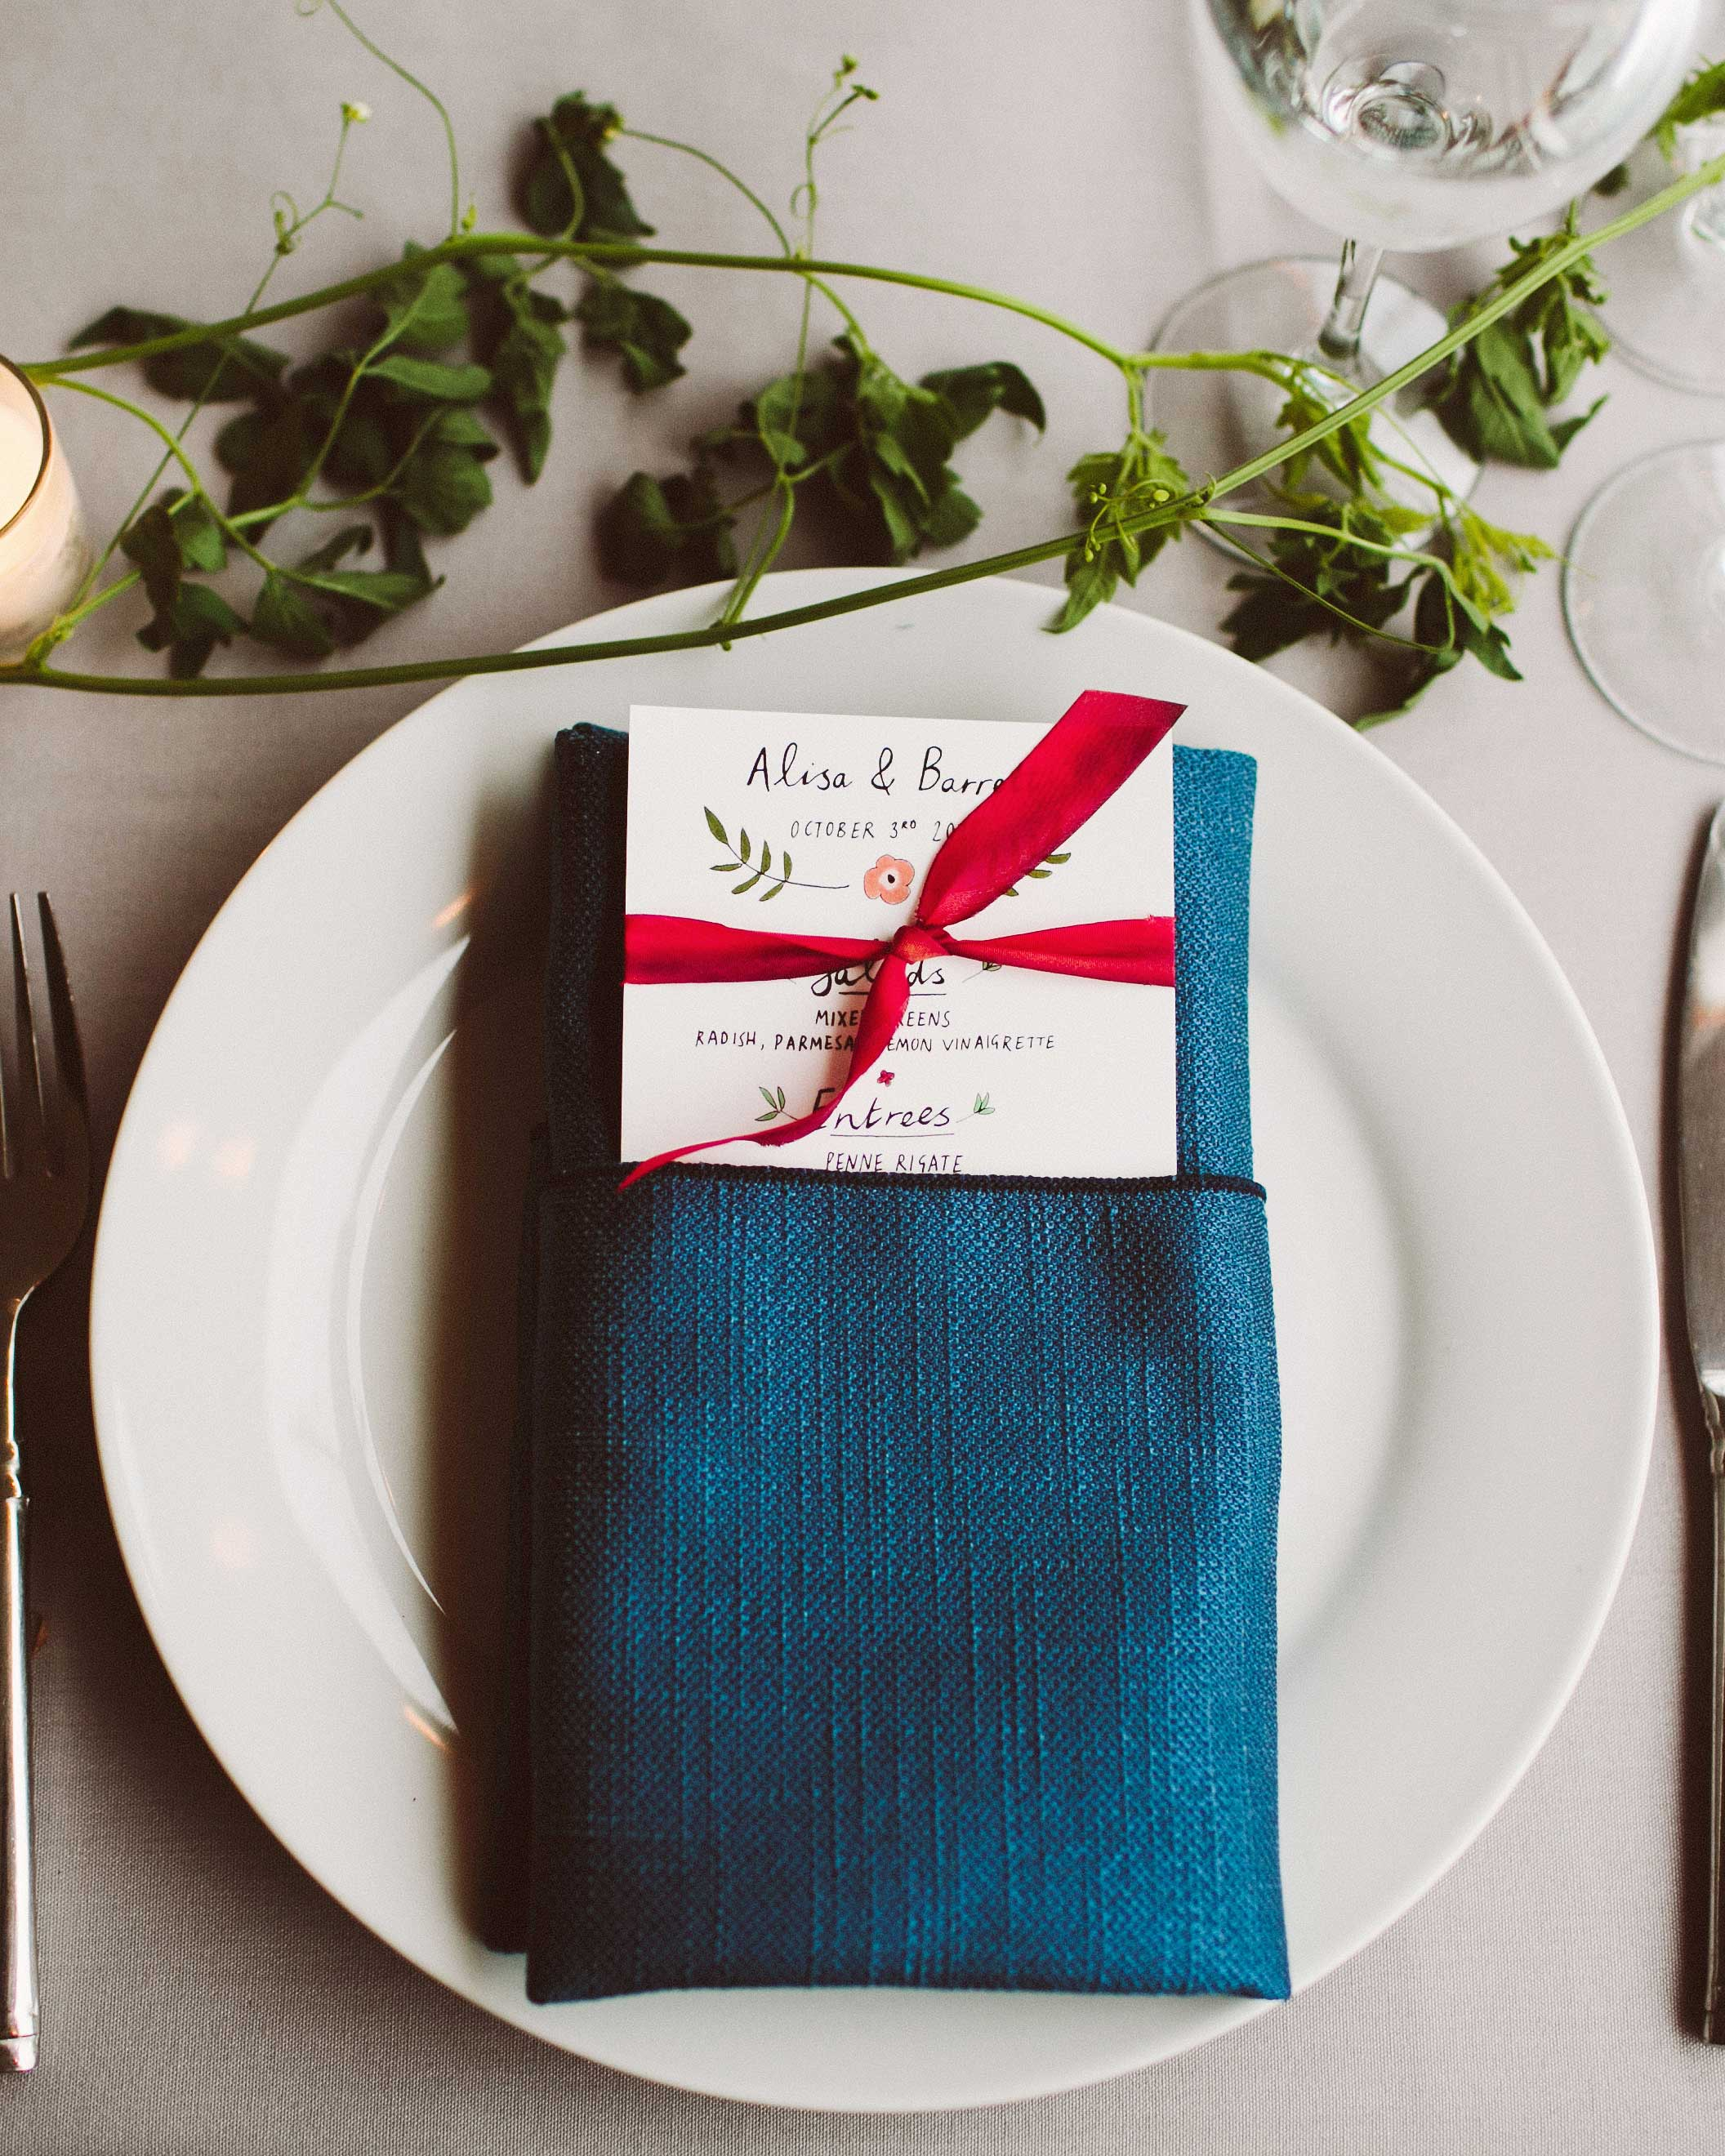 alisa-barrett-wedding-placesetting-1027-s113048-0716.jpg